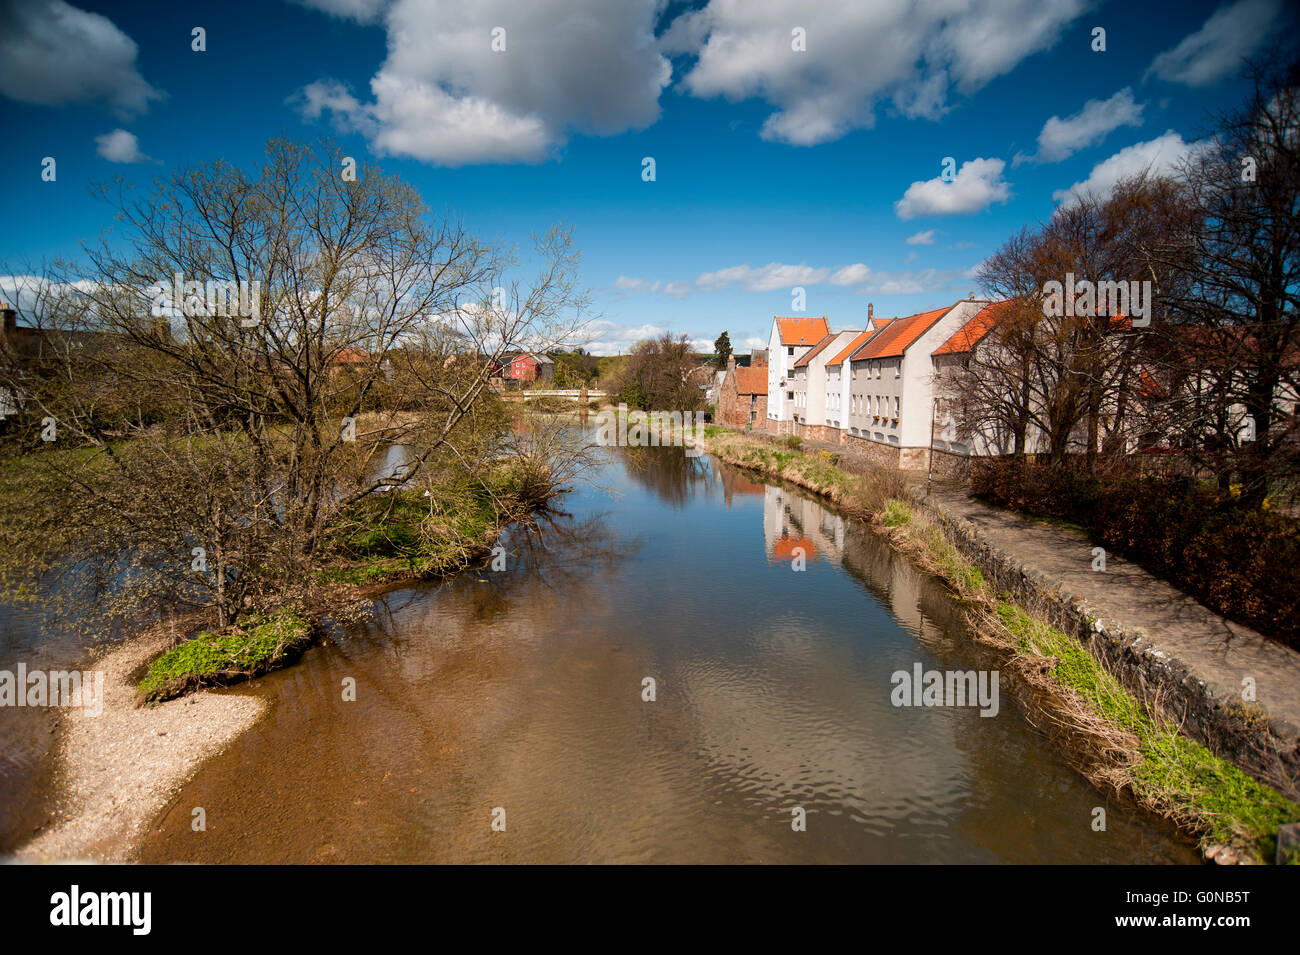 Haddington, East Lothian, Scotland - Stock Image